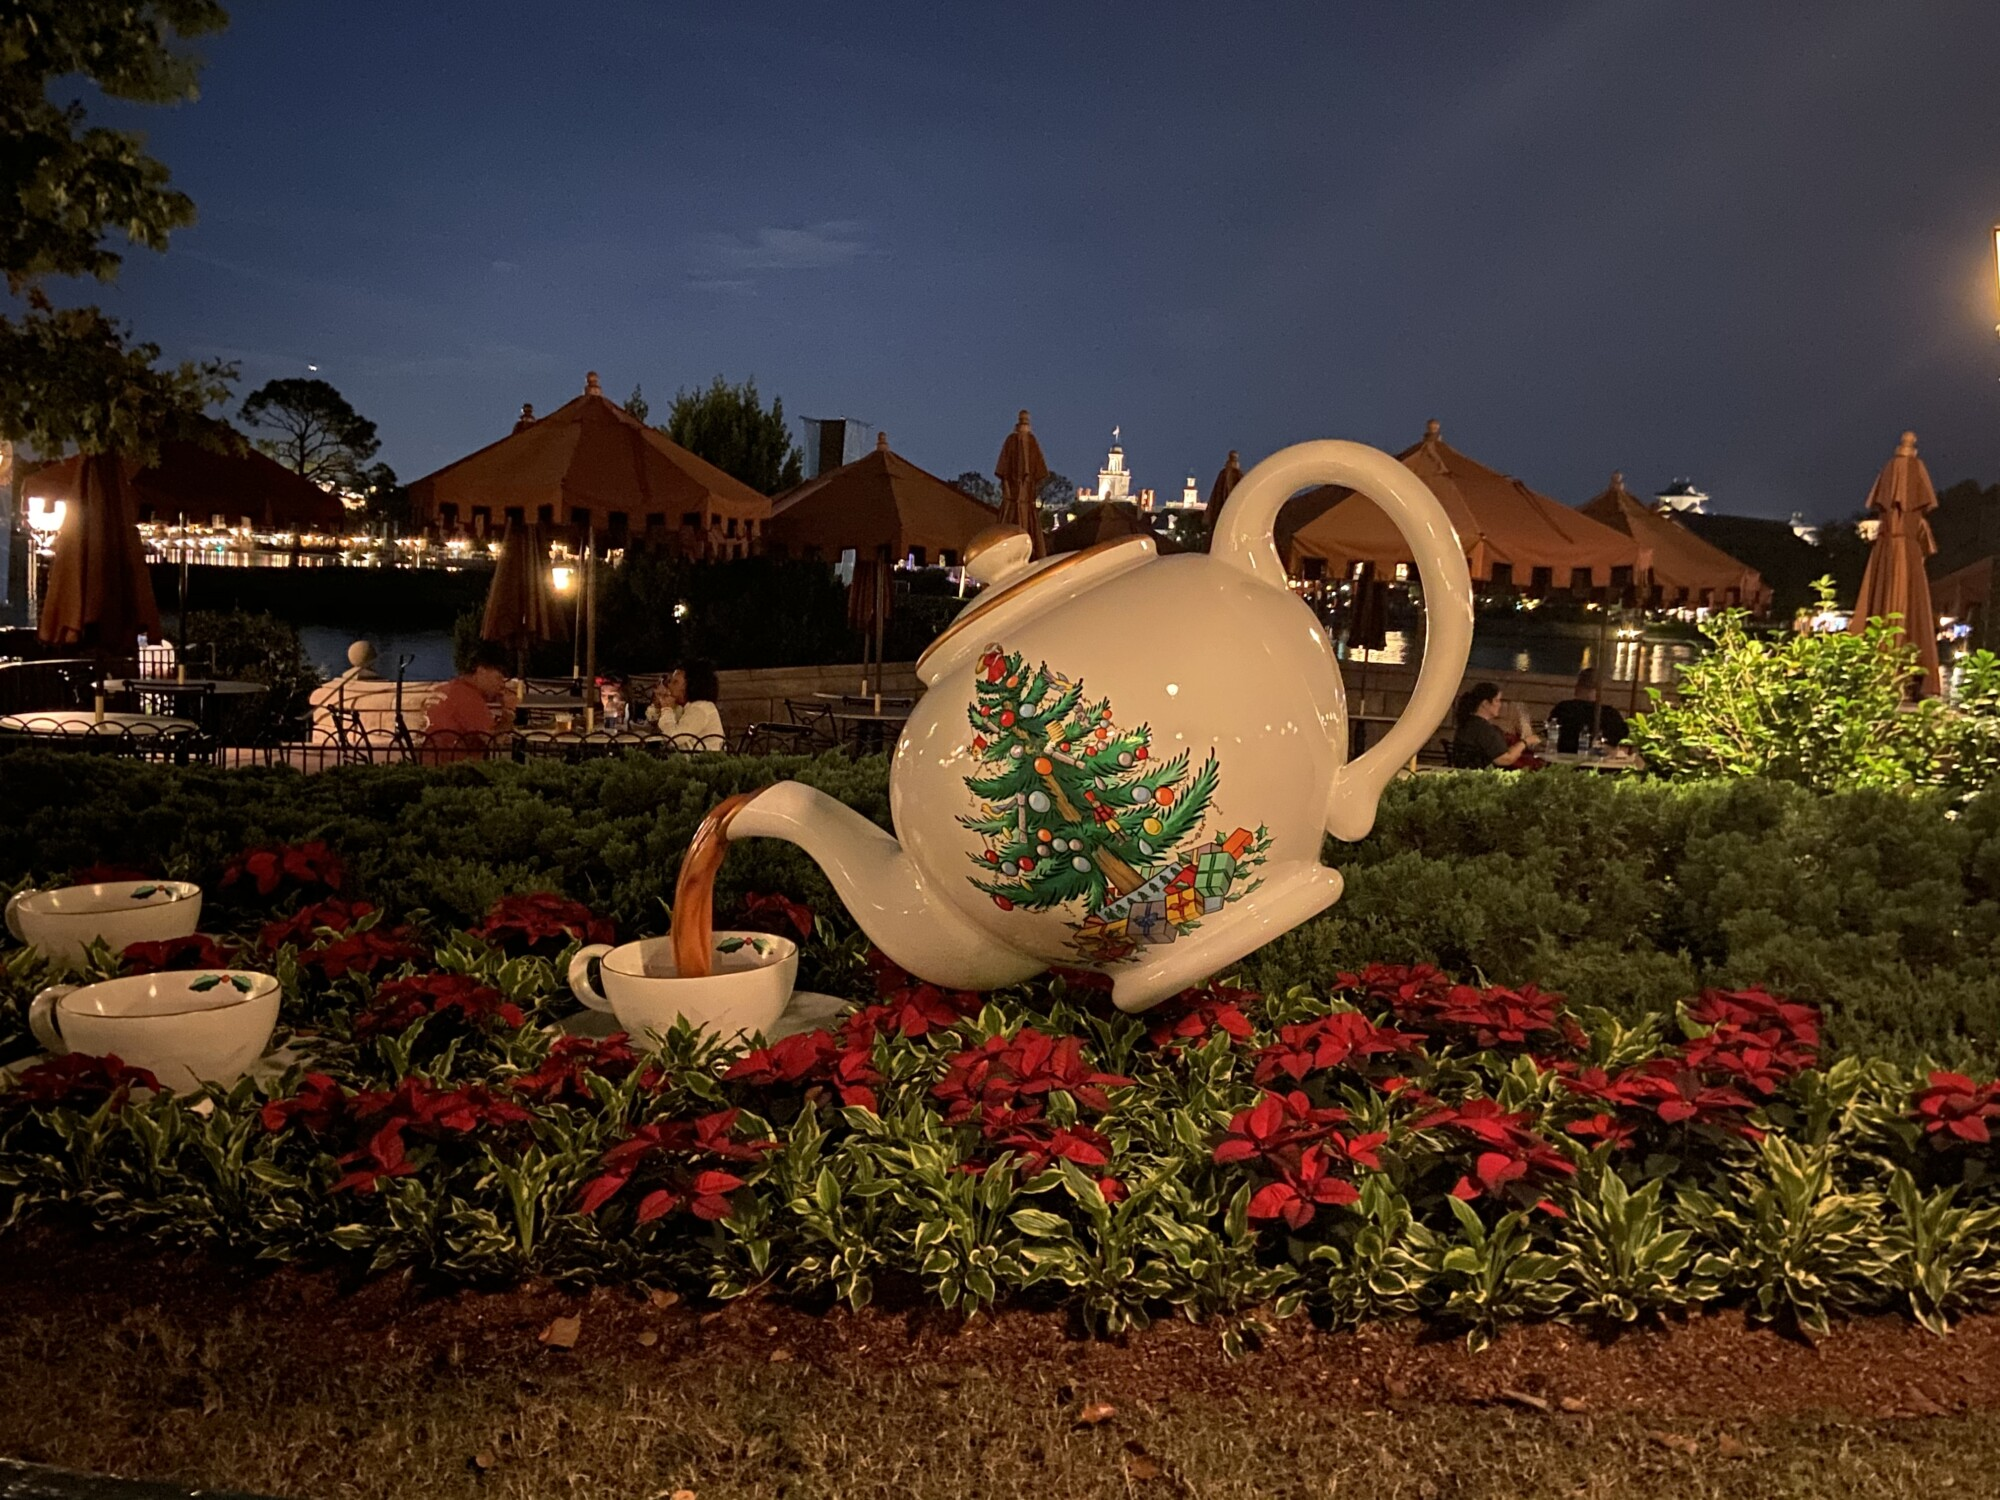 Photos from Opening Weekend at the Epcot International Festival of the Holidays 20